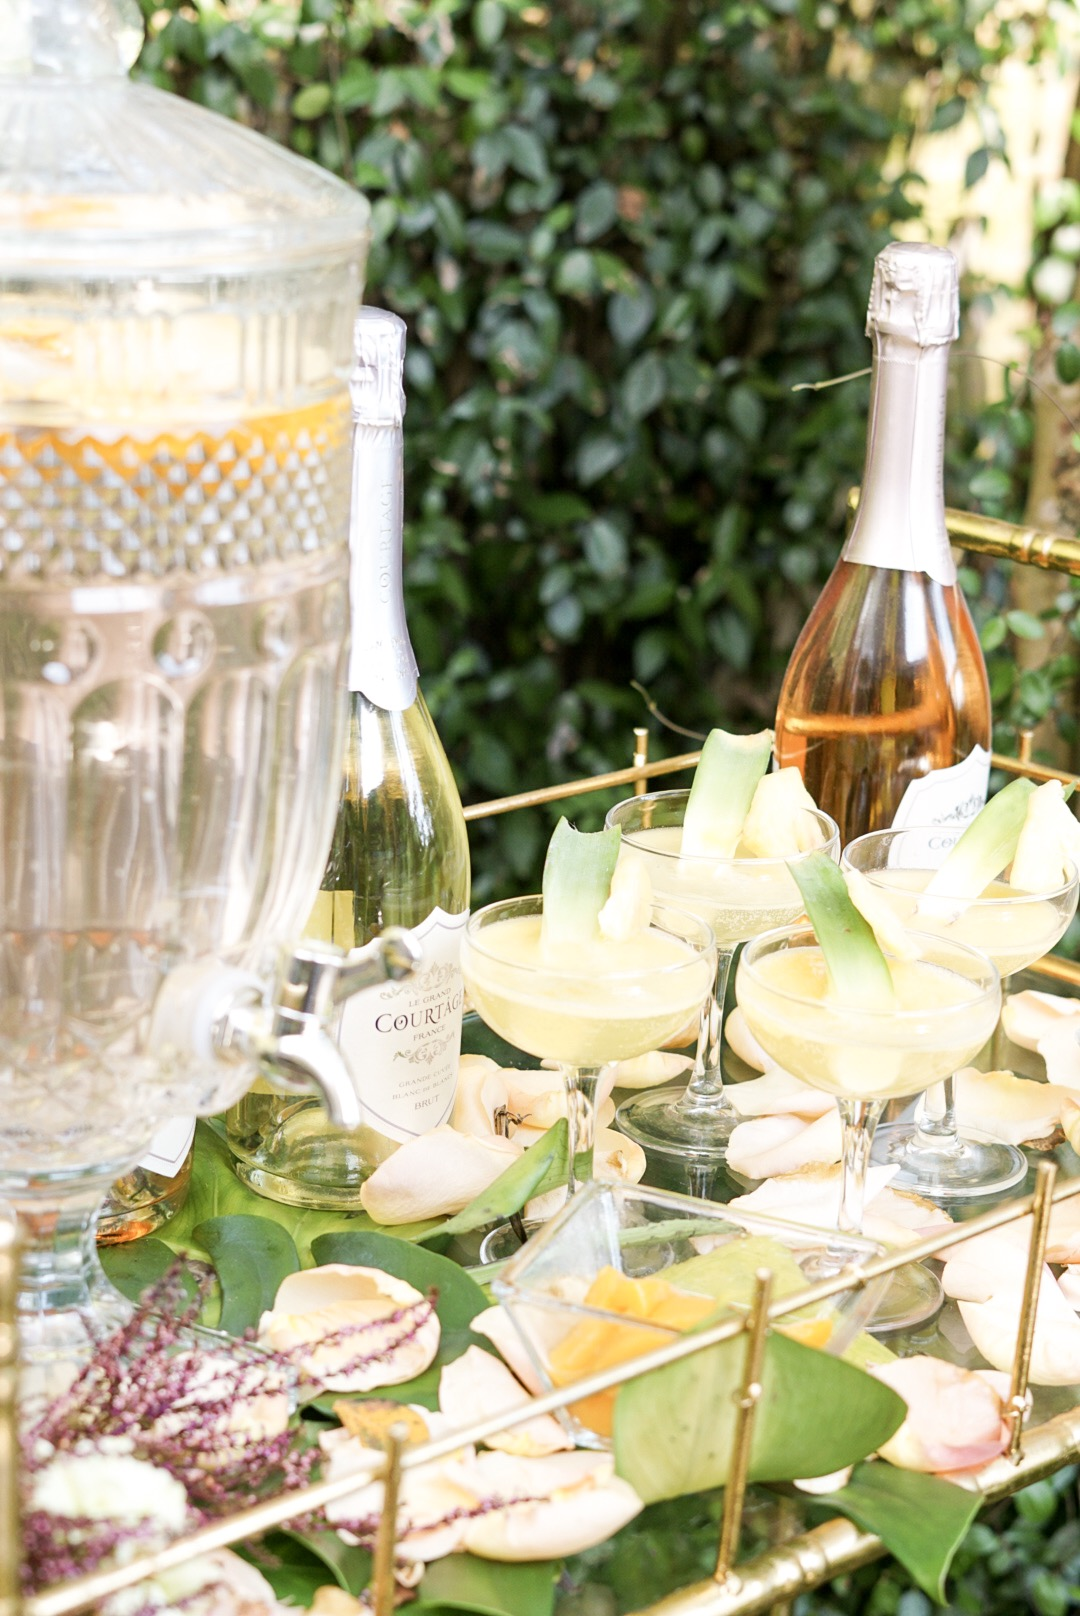 Pineapple Peach Prosecco Punch - Toast from the Host